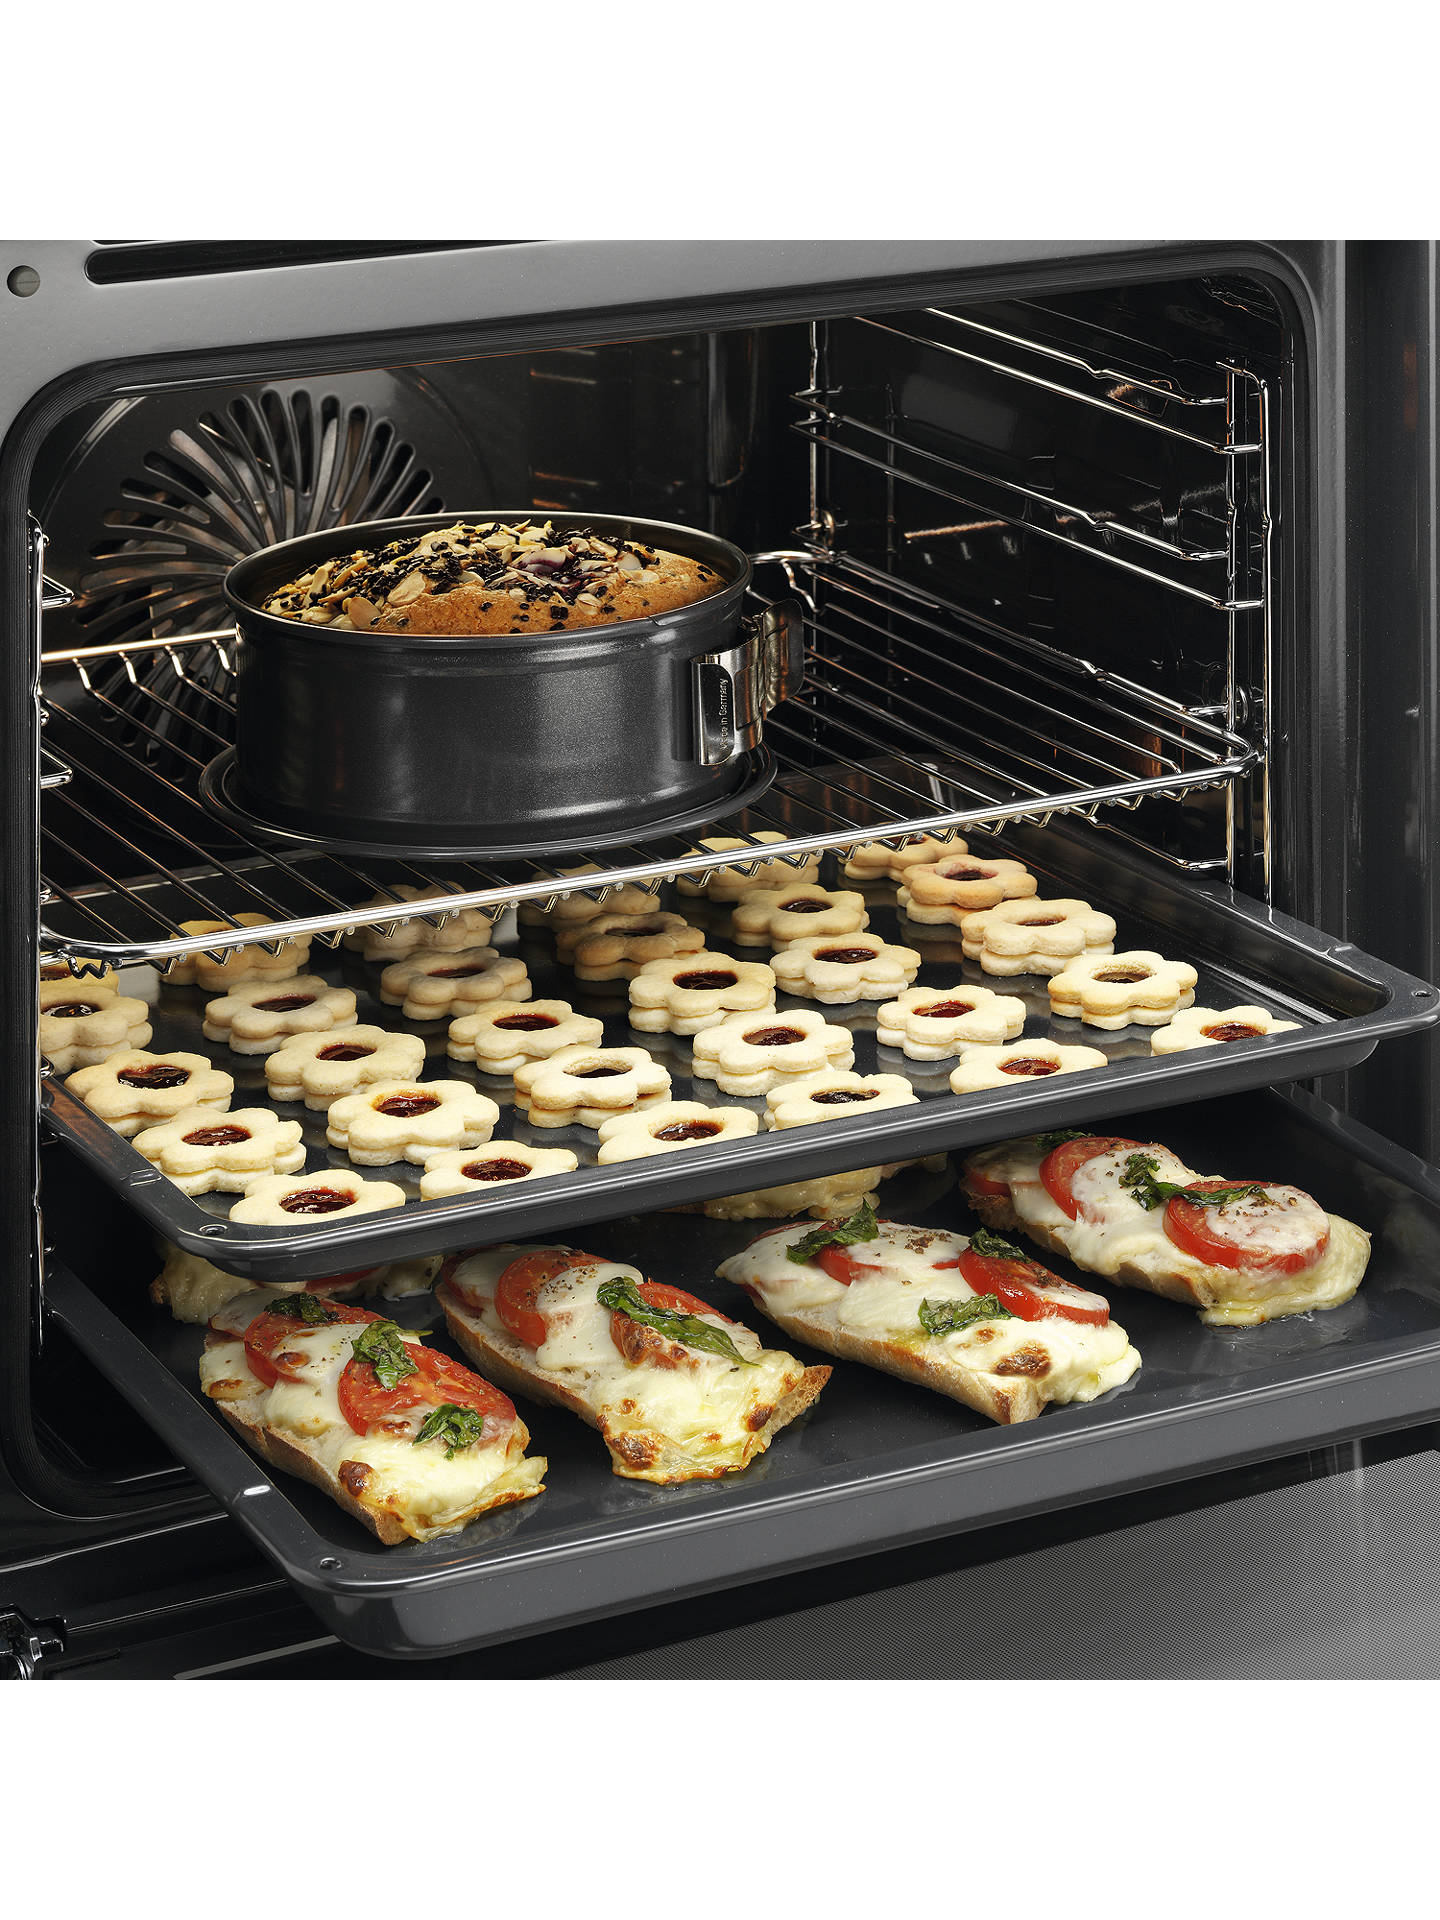 BuyAEG BPS351020M Built-In Single SteamBake Electric Oven, Stainless Steel Online at johnlewis.com